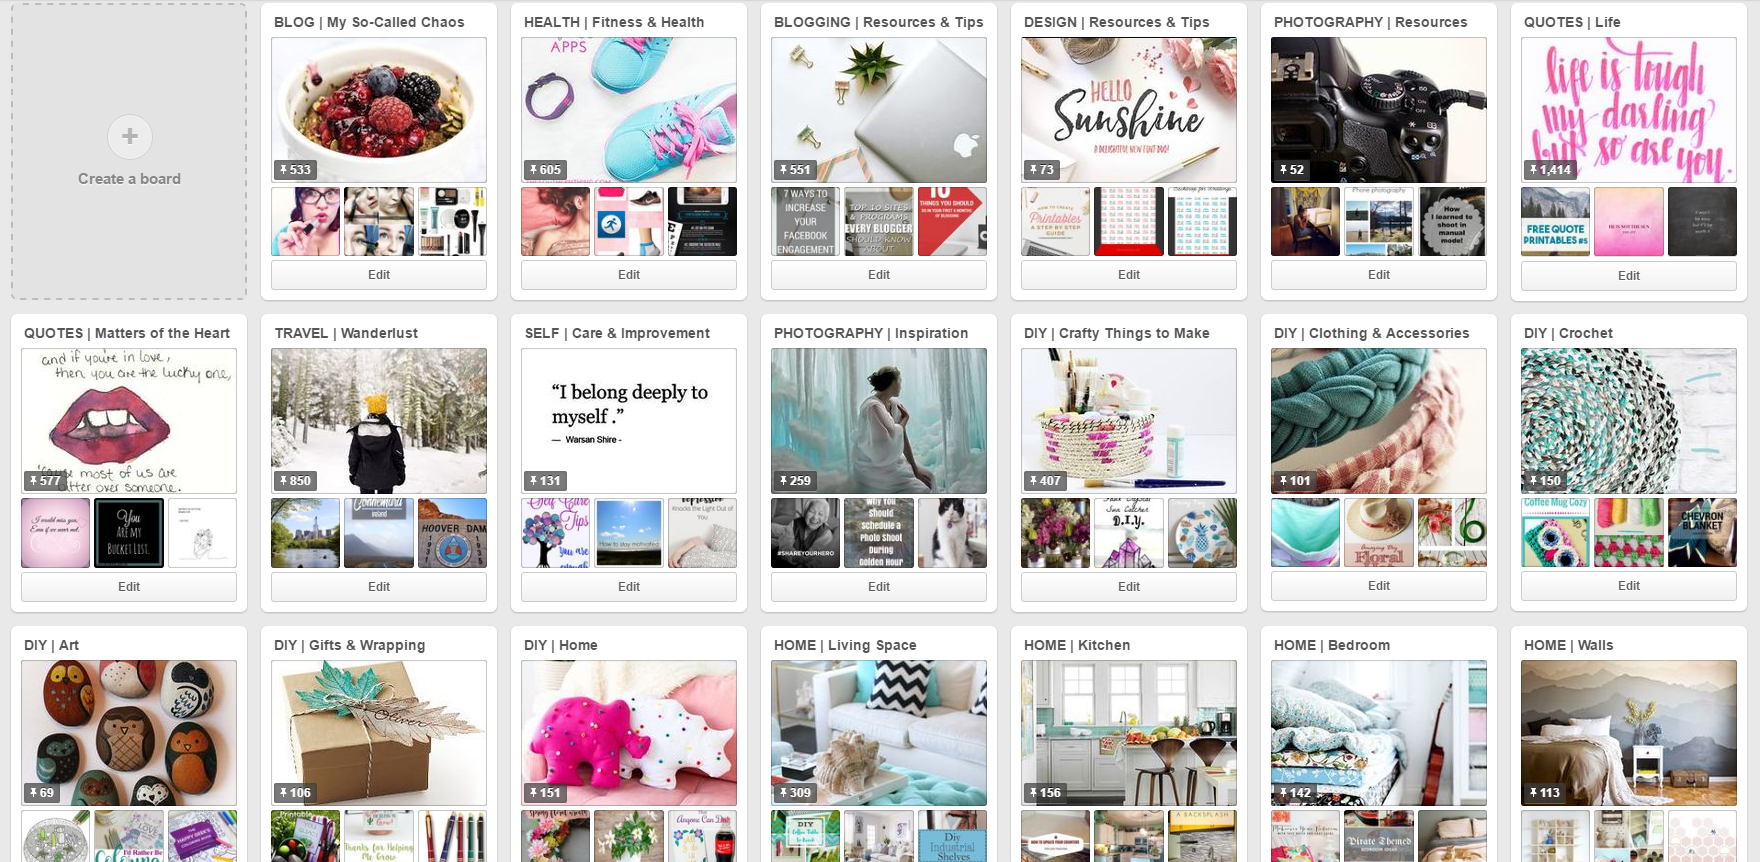 My Pinterest Profile and Boards